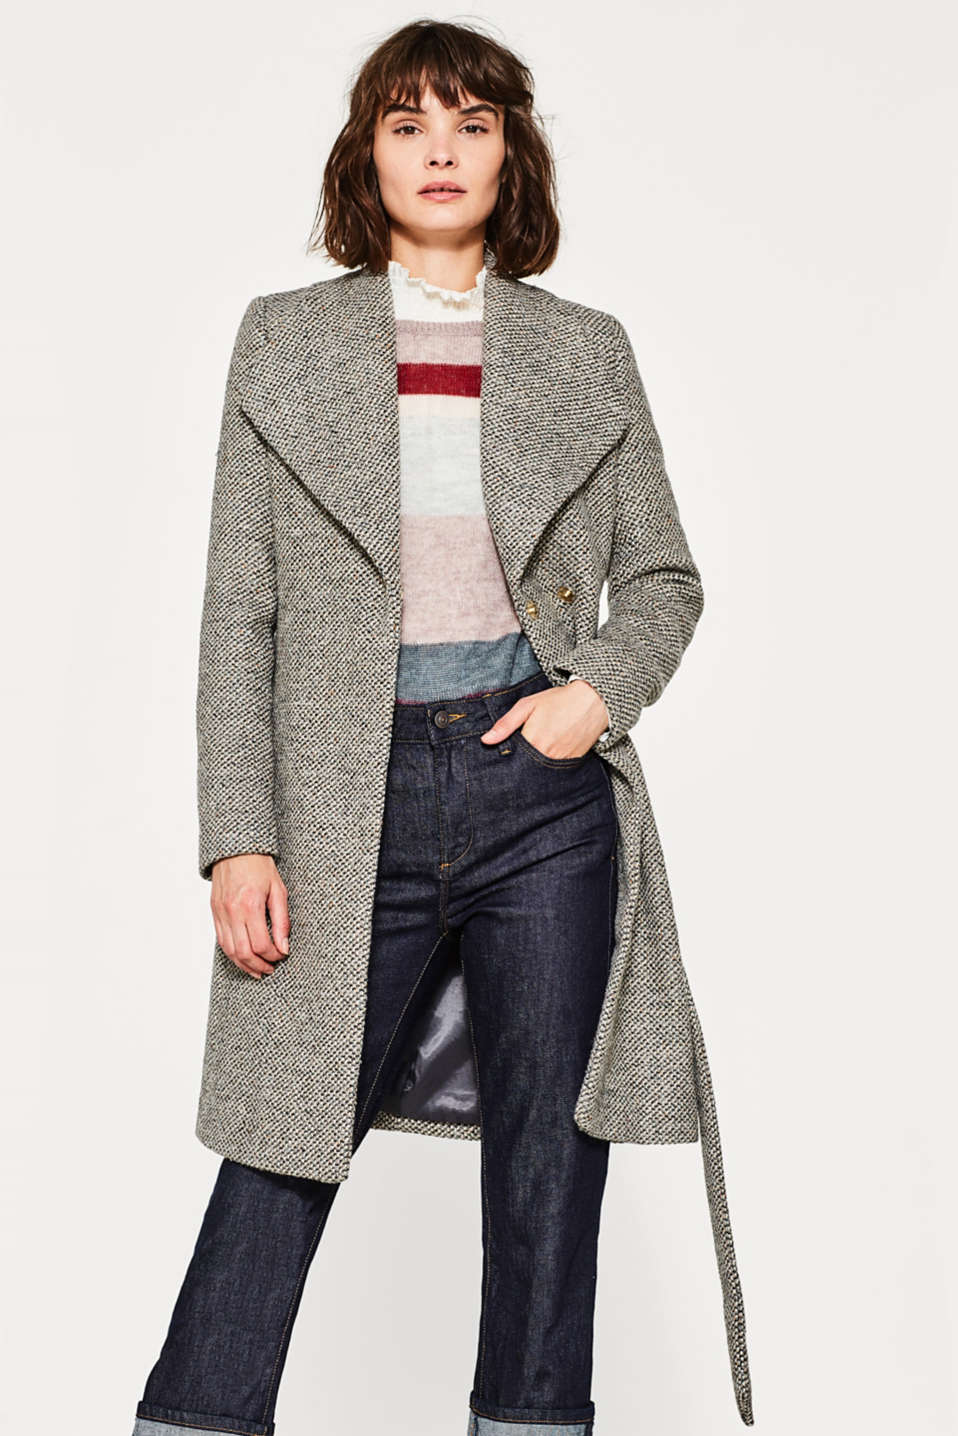 Esprit - Colourful tweed coat with glittering lurex